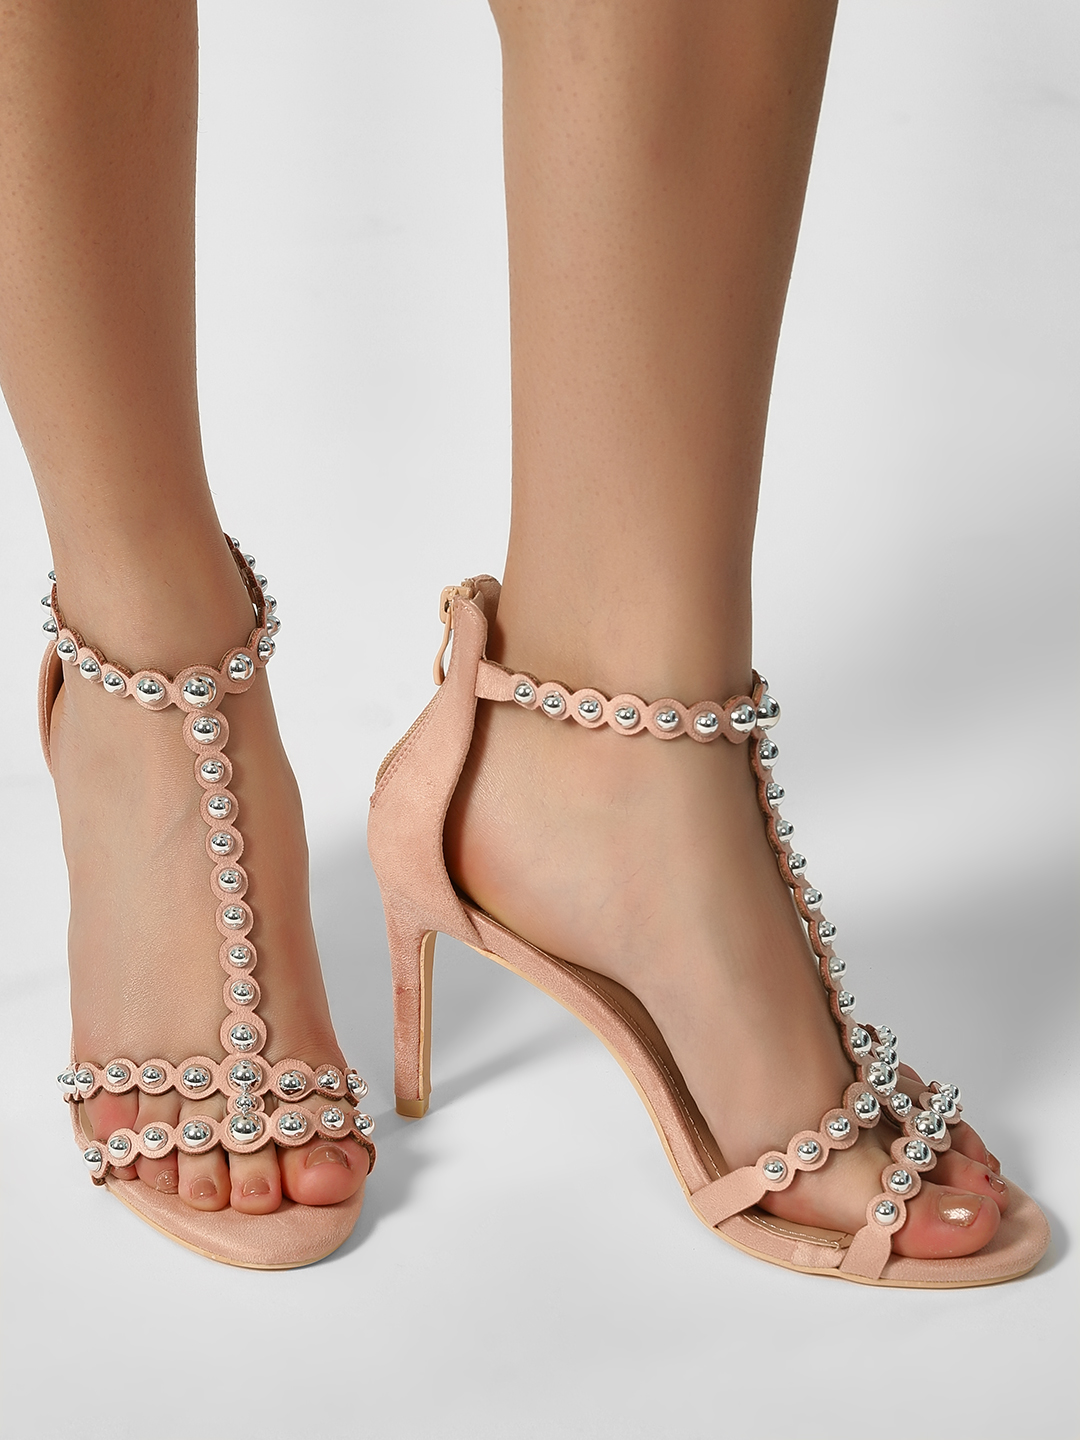 My Foot Couture Pink Suede Studded T-Strap Heeled Sandals 1